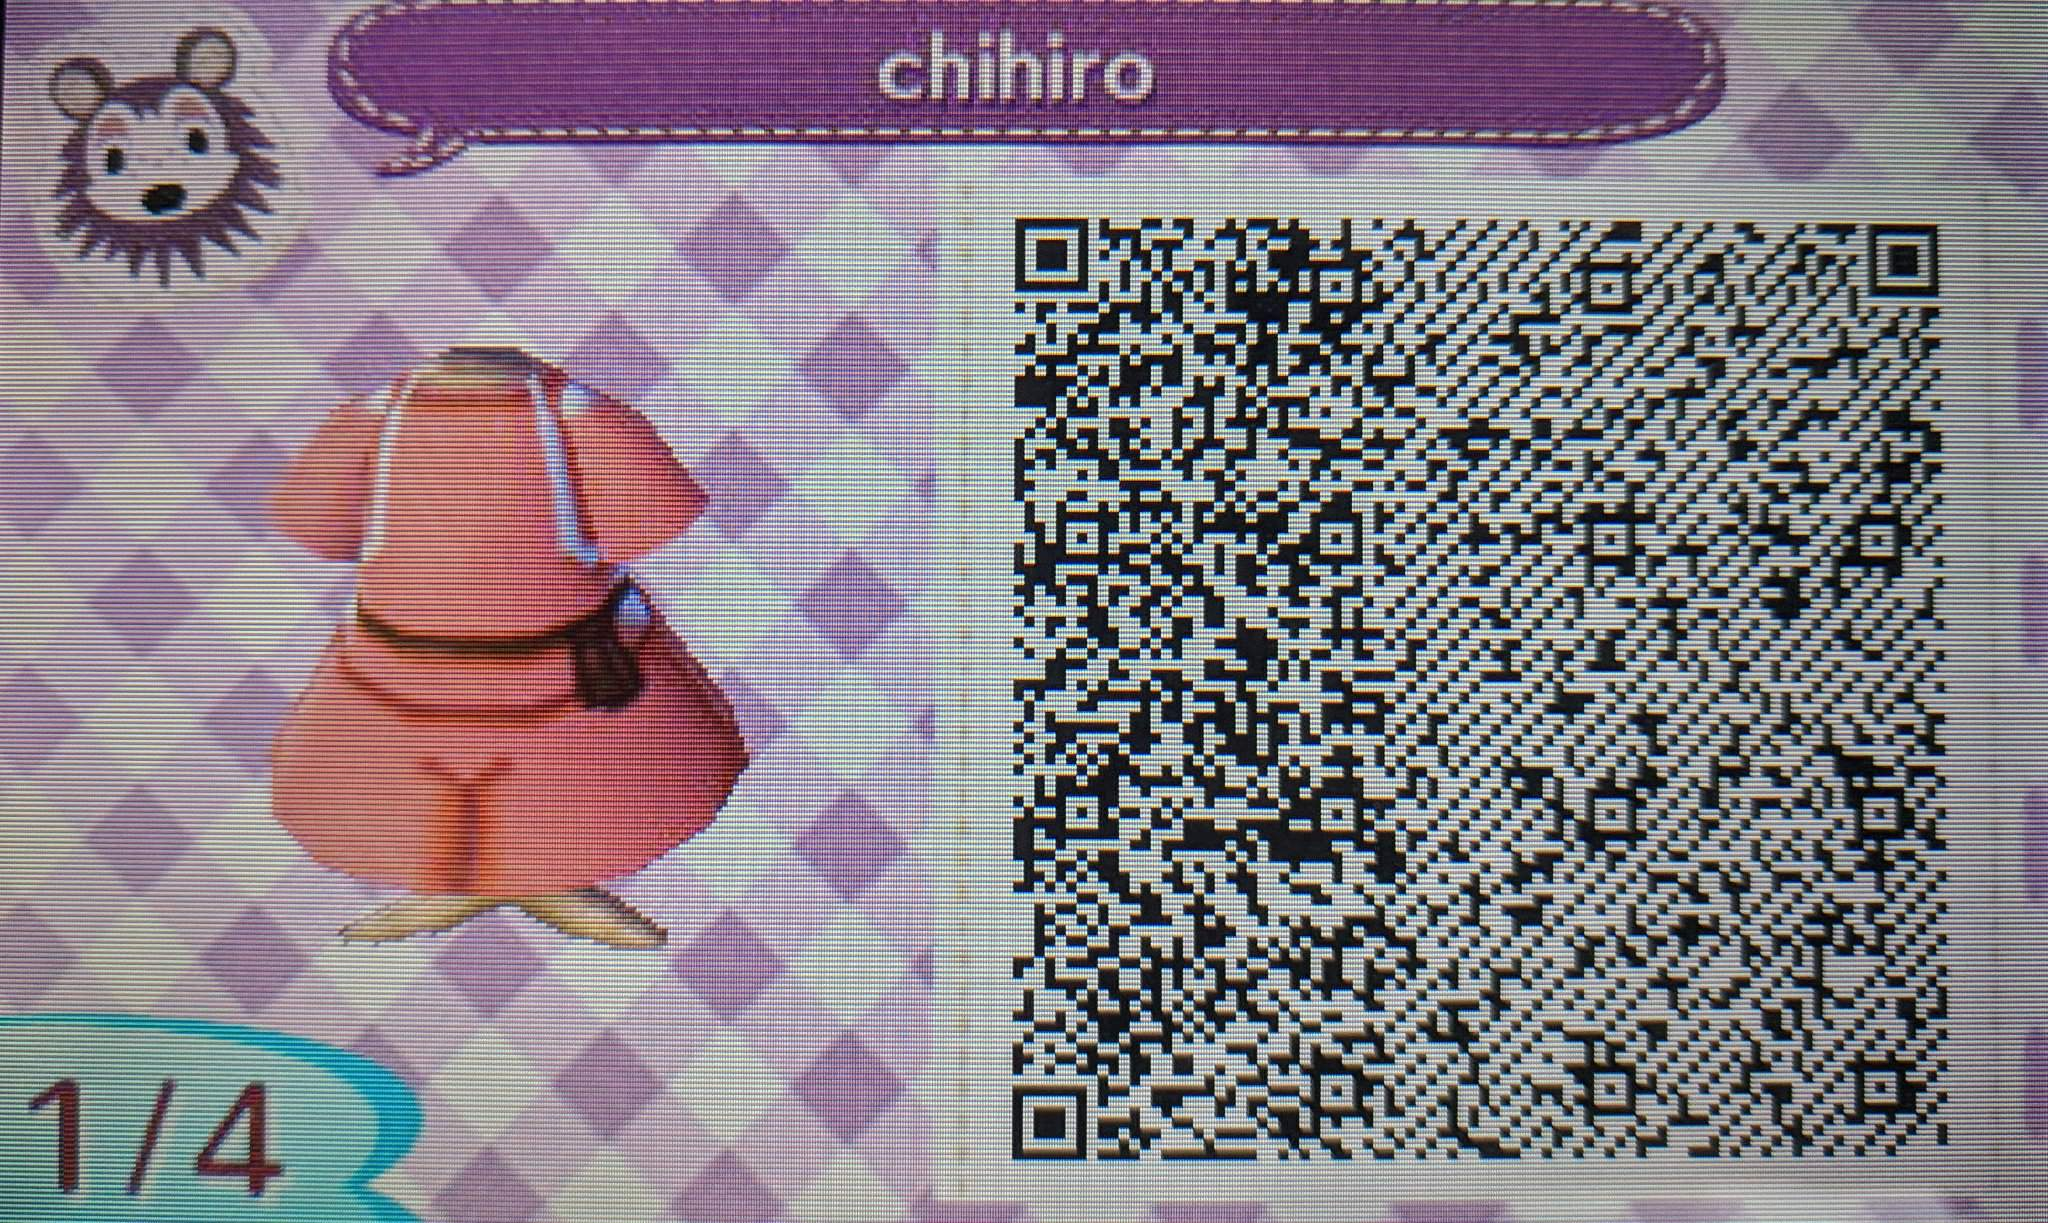 Qr Spirited Away Outfit Animal Crossing Amino